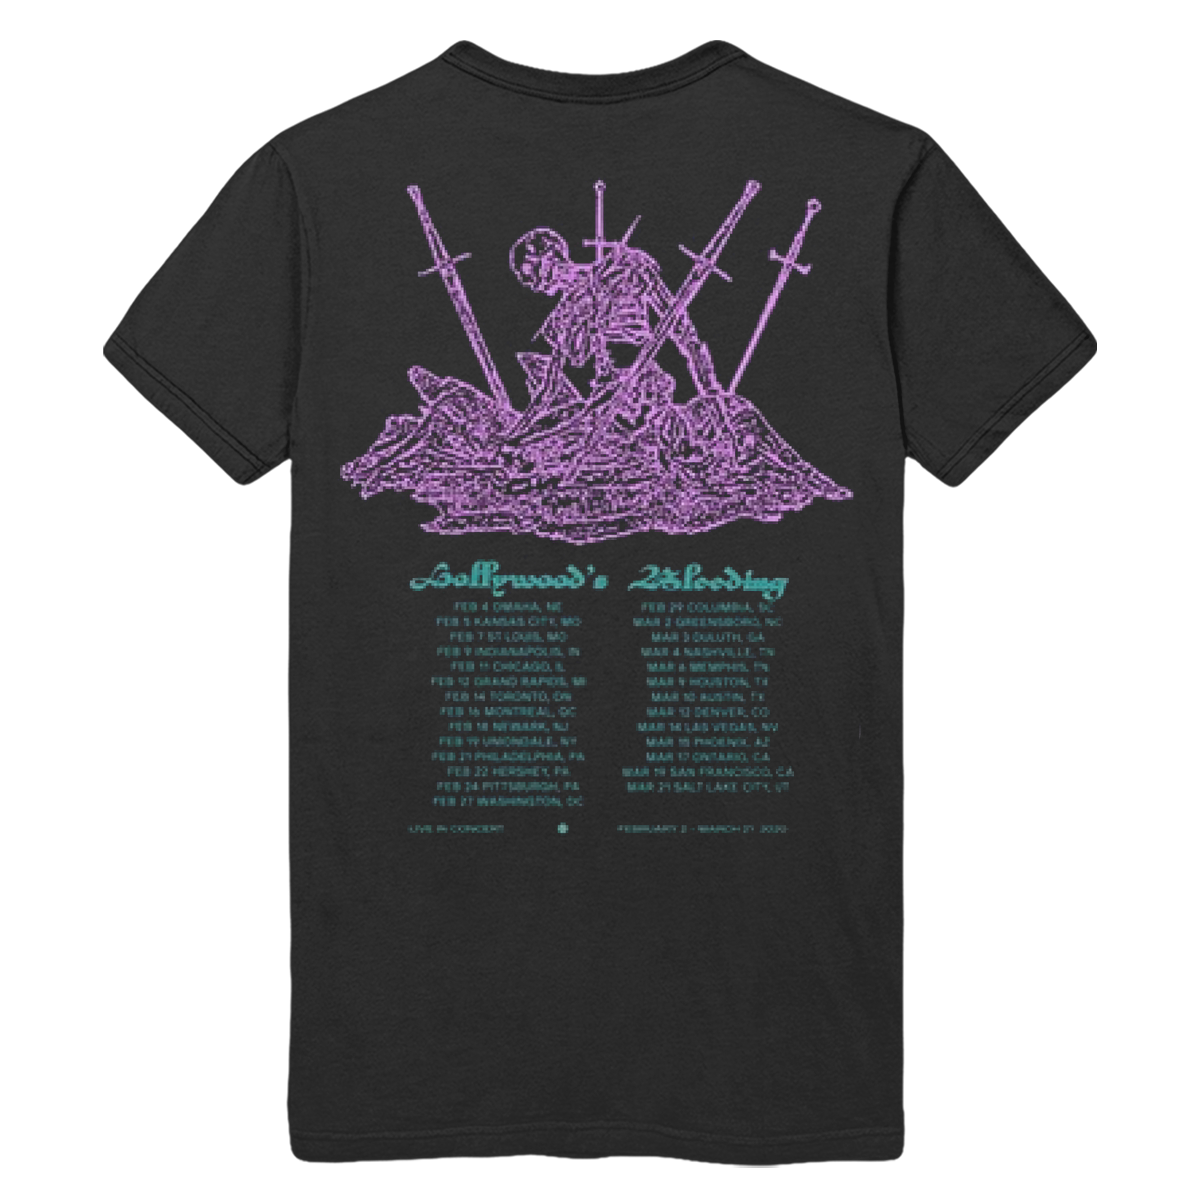 Hollywood's Bleeding Black Tour Tee